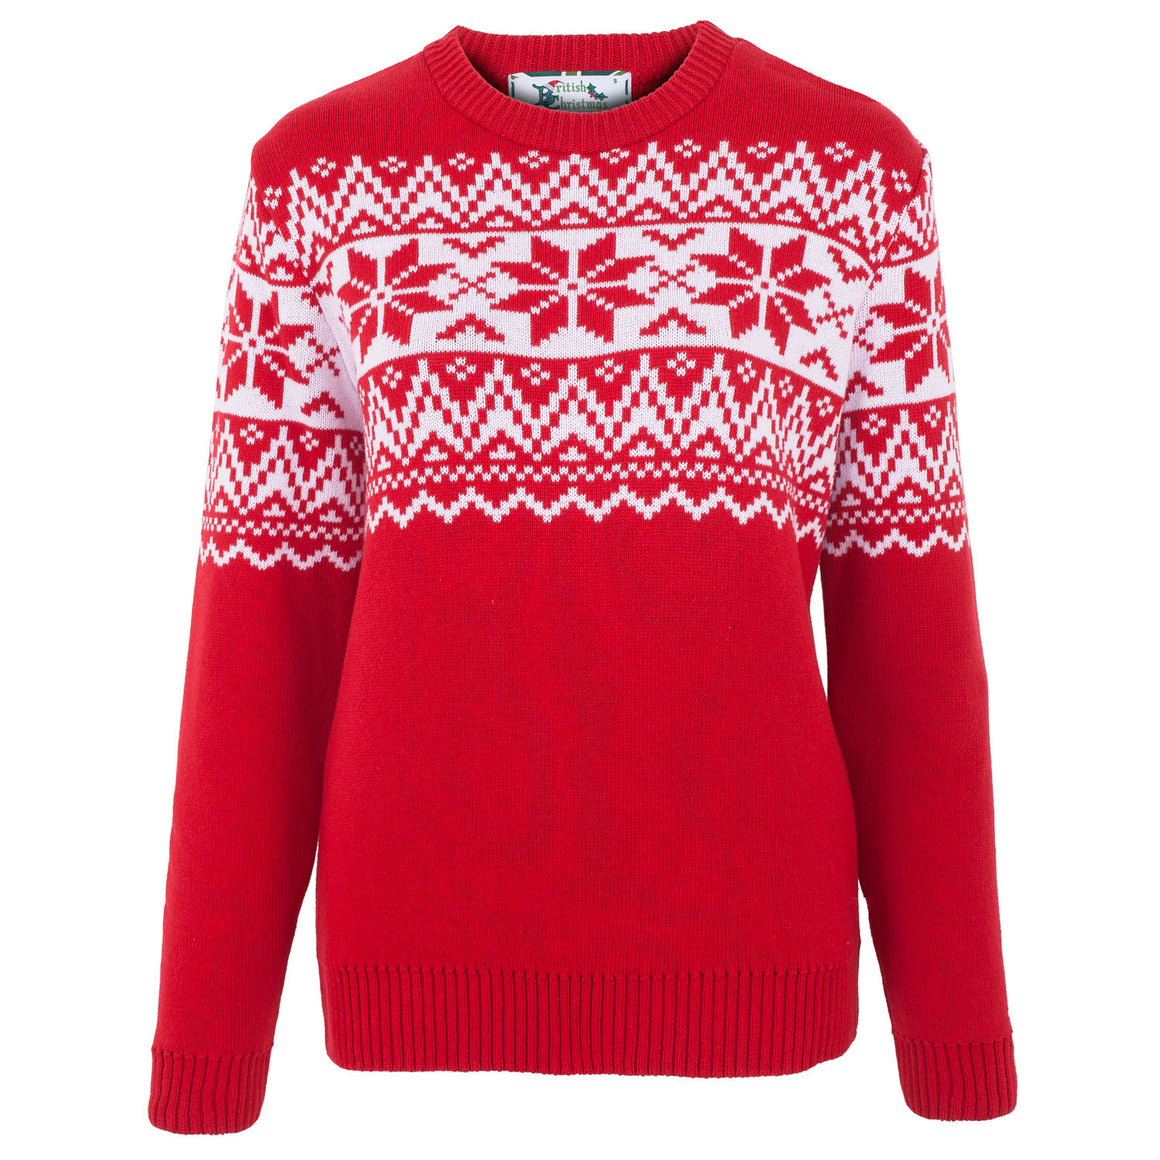 The Nordic Fairisle Red Womens Eco Christmas Jumper